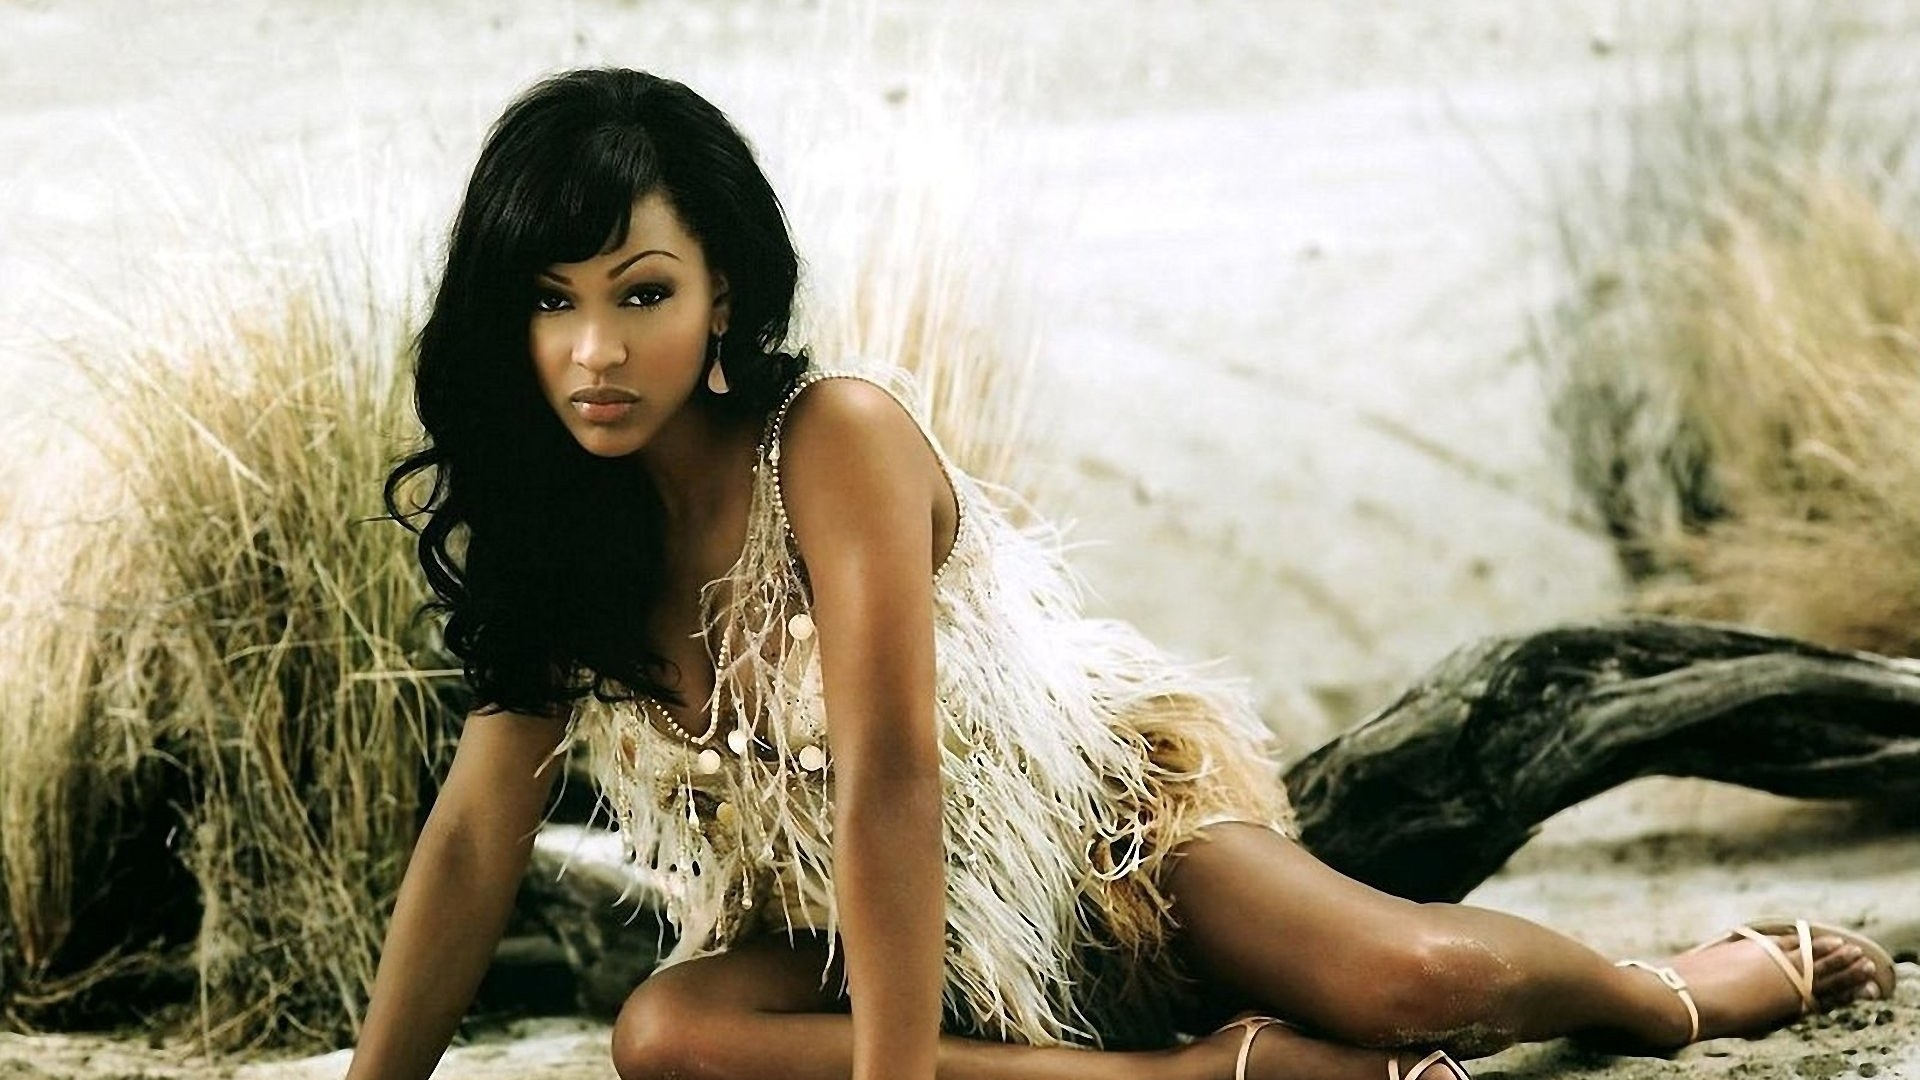 meagan good wallpapers high resolution and quality download